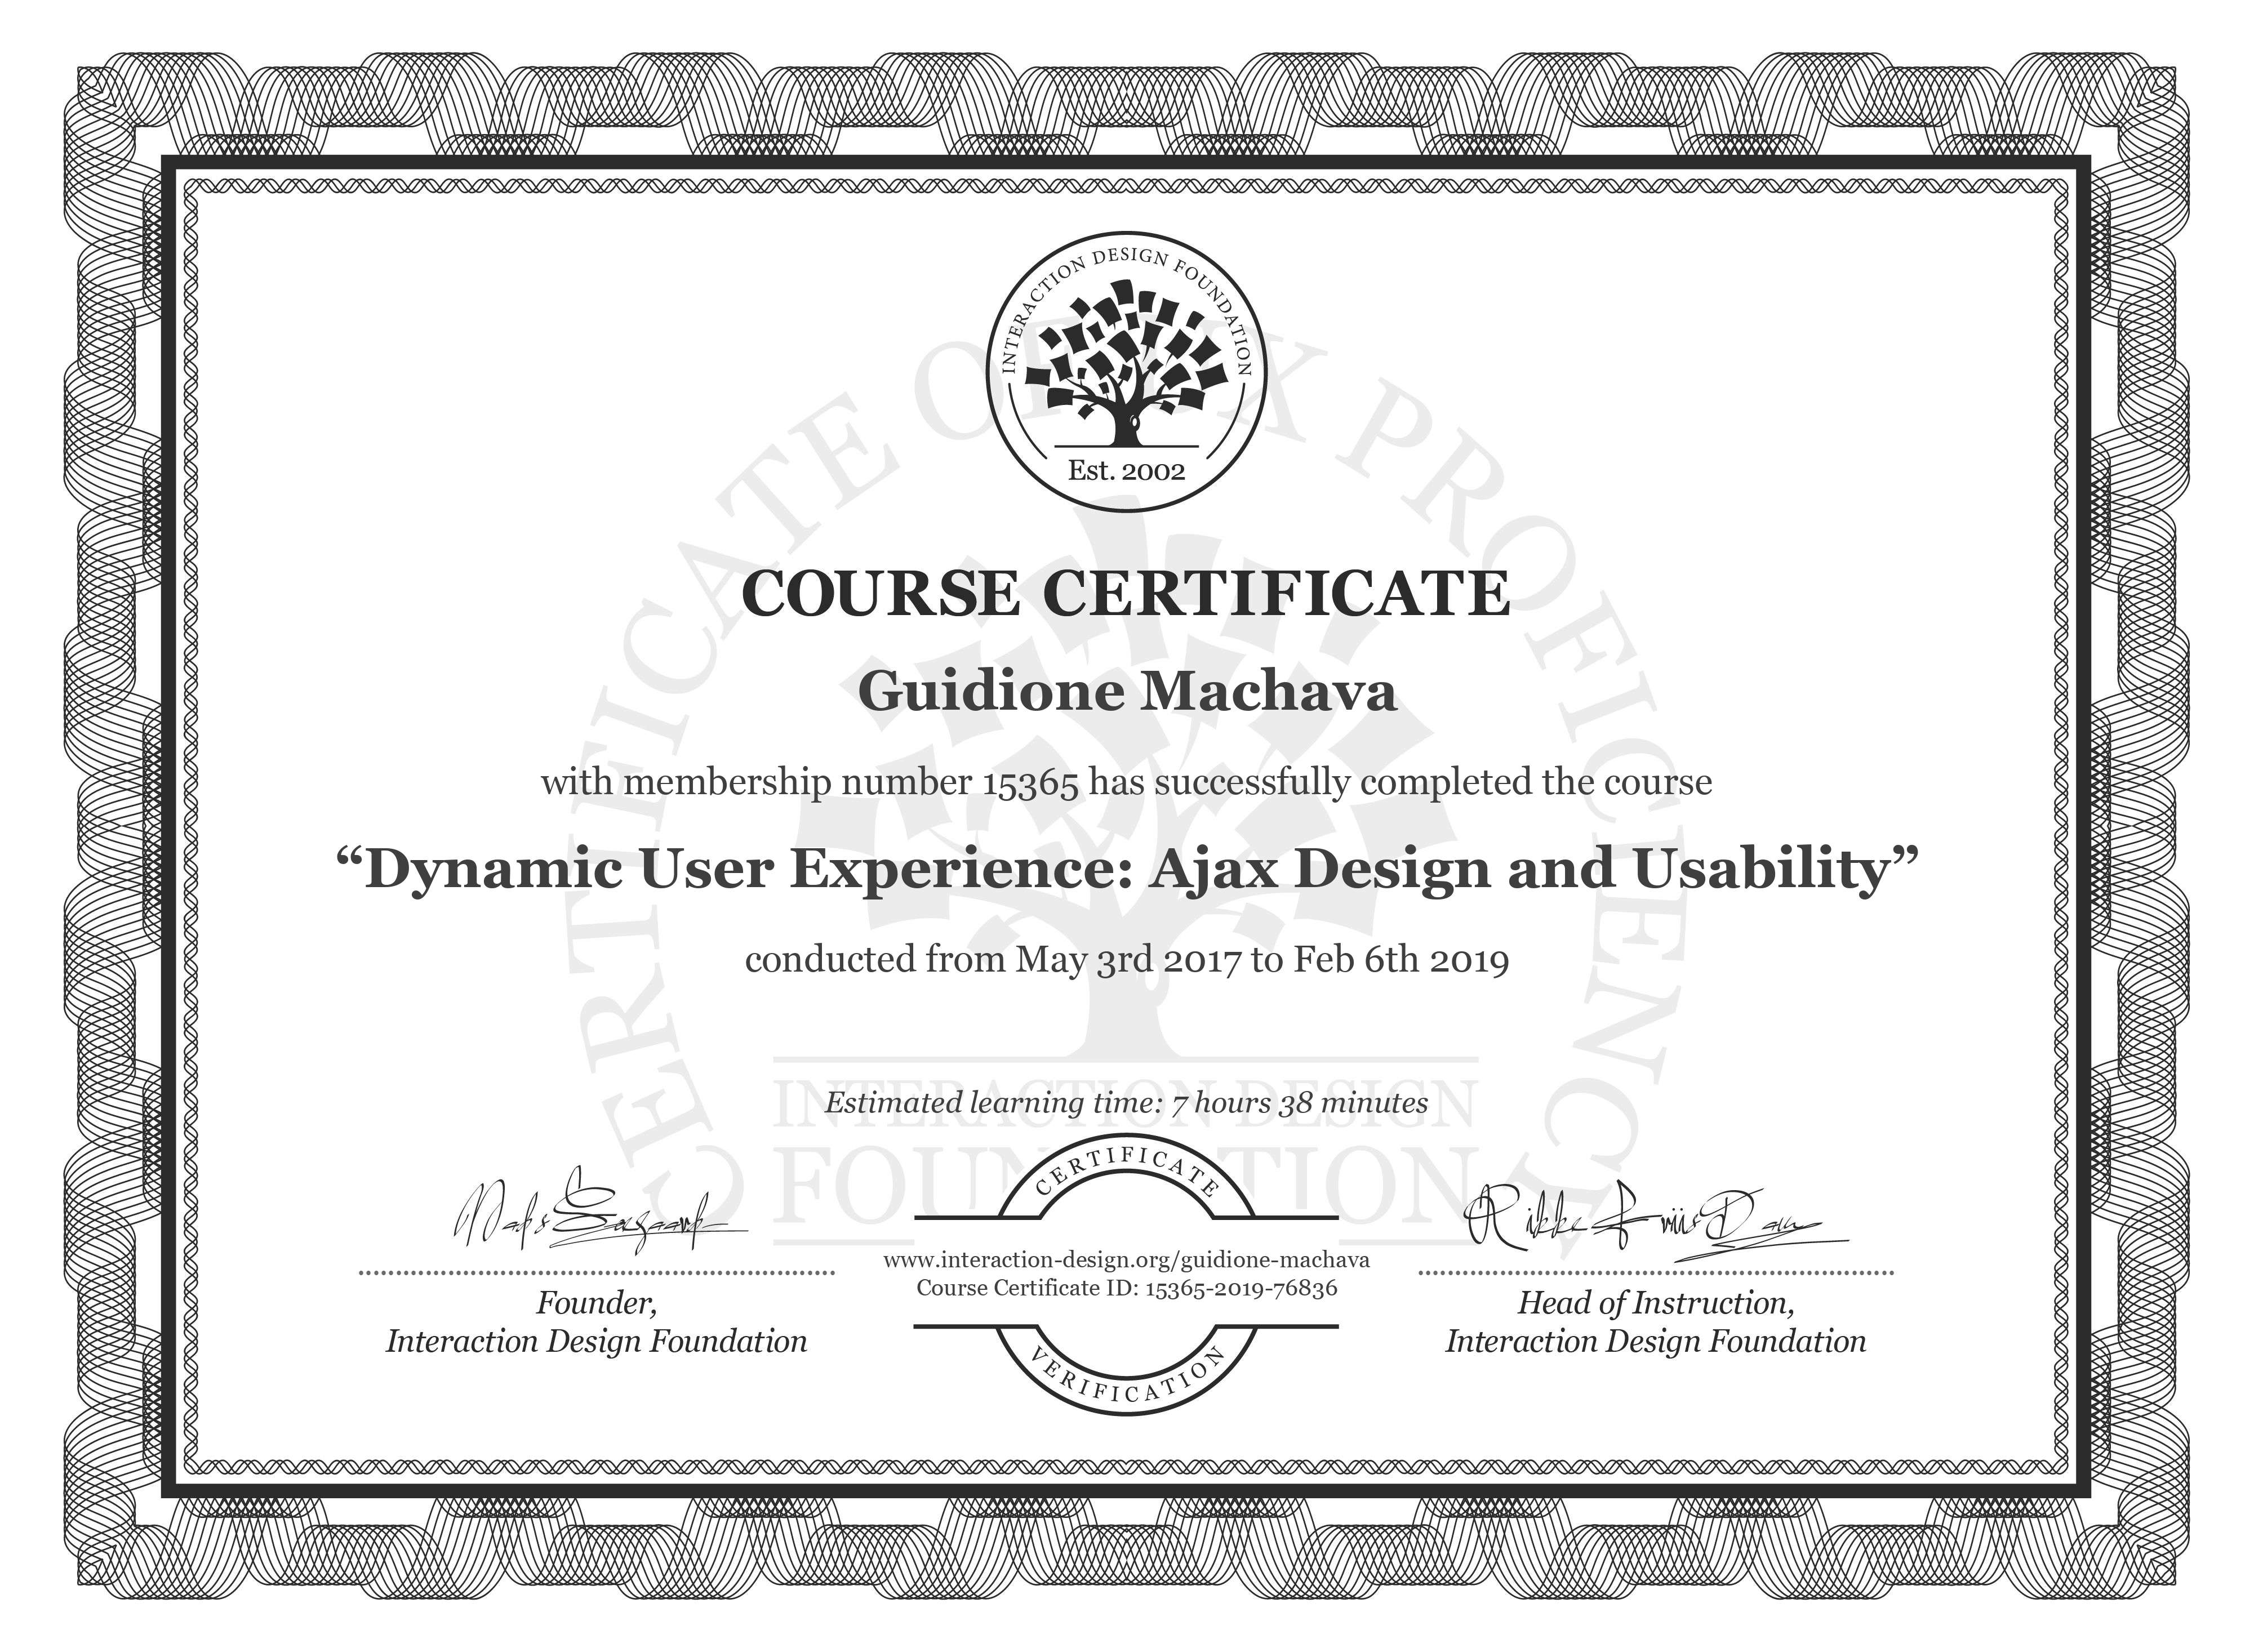 Guidione Machava: Course Certificate - Dynamic User Experience: Ajax Design and Usability